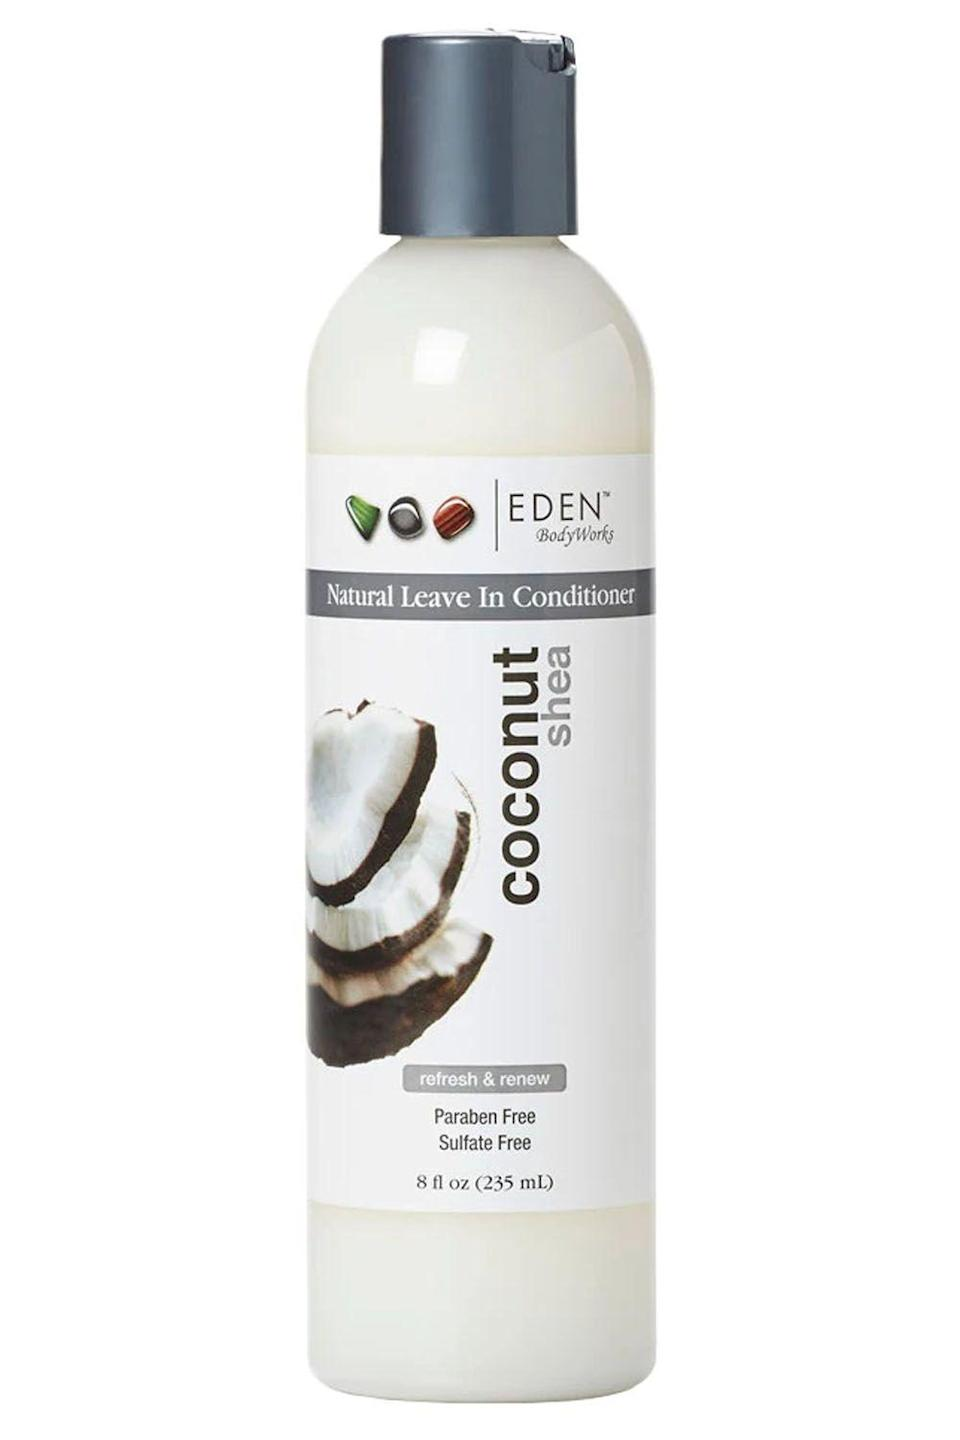 """<p><strong>EDEN BodyWorks</strong></p><p>amazon.com</p><p><strong>$7.76</strong></p><p><a href=""""https://www.amazon.com/dp/B00IYM6J4W?tag=syn-yahoo-20&ascsubtag=%5Bartid%7C10049.g.33904669%5Bsrc%7Cyahoo-us"""" rel=""""nofollow noopener"""" target=""""_blank"""" data-ylk=""""slk:Shop Now"""" class=""""link rapid-noclick-resp"""">Shop Now</a></p><p>Some leave-in conditioners for natural hair make finding your curl pattern feel like a game of hide-and-seek. Instead of tolerating greasy conditioners that over-saturate your hair,<strong> switch to this lightweight, curl-defining leave-in. </strong>When the <a href=""""https://www.cosmopolitan.com/style-beauty/beauty/g10297243/coconut-oil-products-for-hair/"""" rel=""""nofollow noopener"""" target=""""_blank"""" data-ylk=""""slk:coconut oil"""" class=""""link rapid-noclick-resp"""">coconut oil</a> and shea butter in this formula come together, it's like a Drake and Future collab—they work in tandem, one never overpowering the other, and it's always a hit. </p>"""